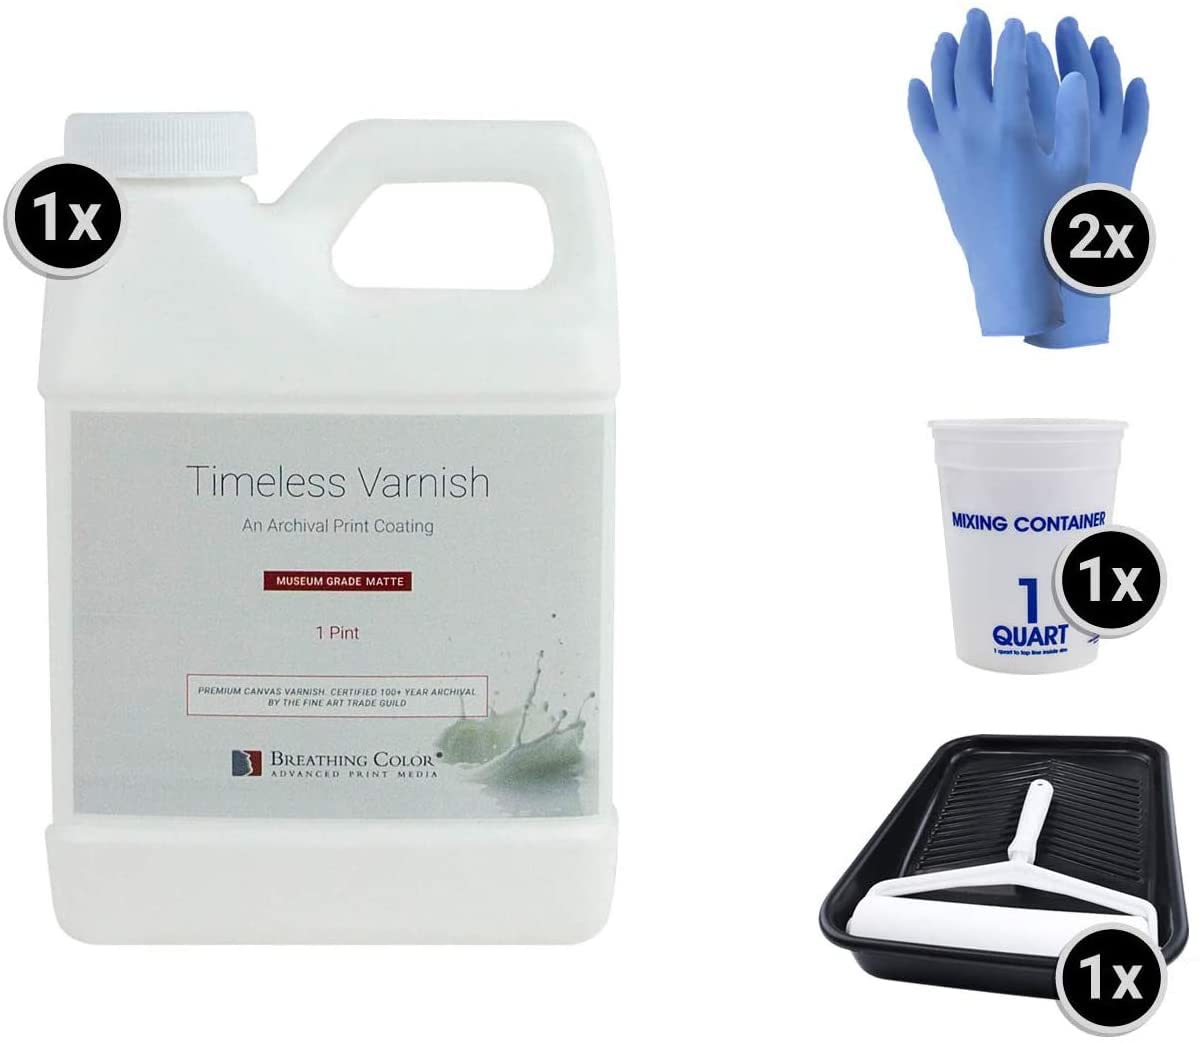 Timeless Archival Print Varnish Kit - 1 Pint, Matte Finish, Best Canvas Coating, Certified Archival Quality, Includes Foam Roller, Mixing Cups, and Gloves Bundle